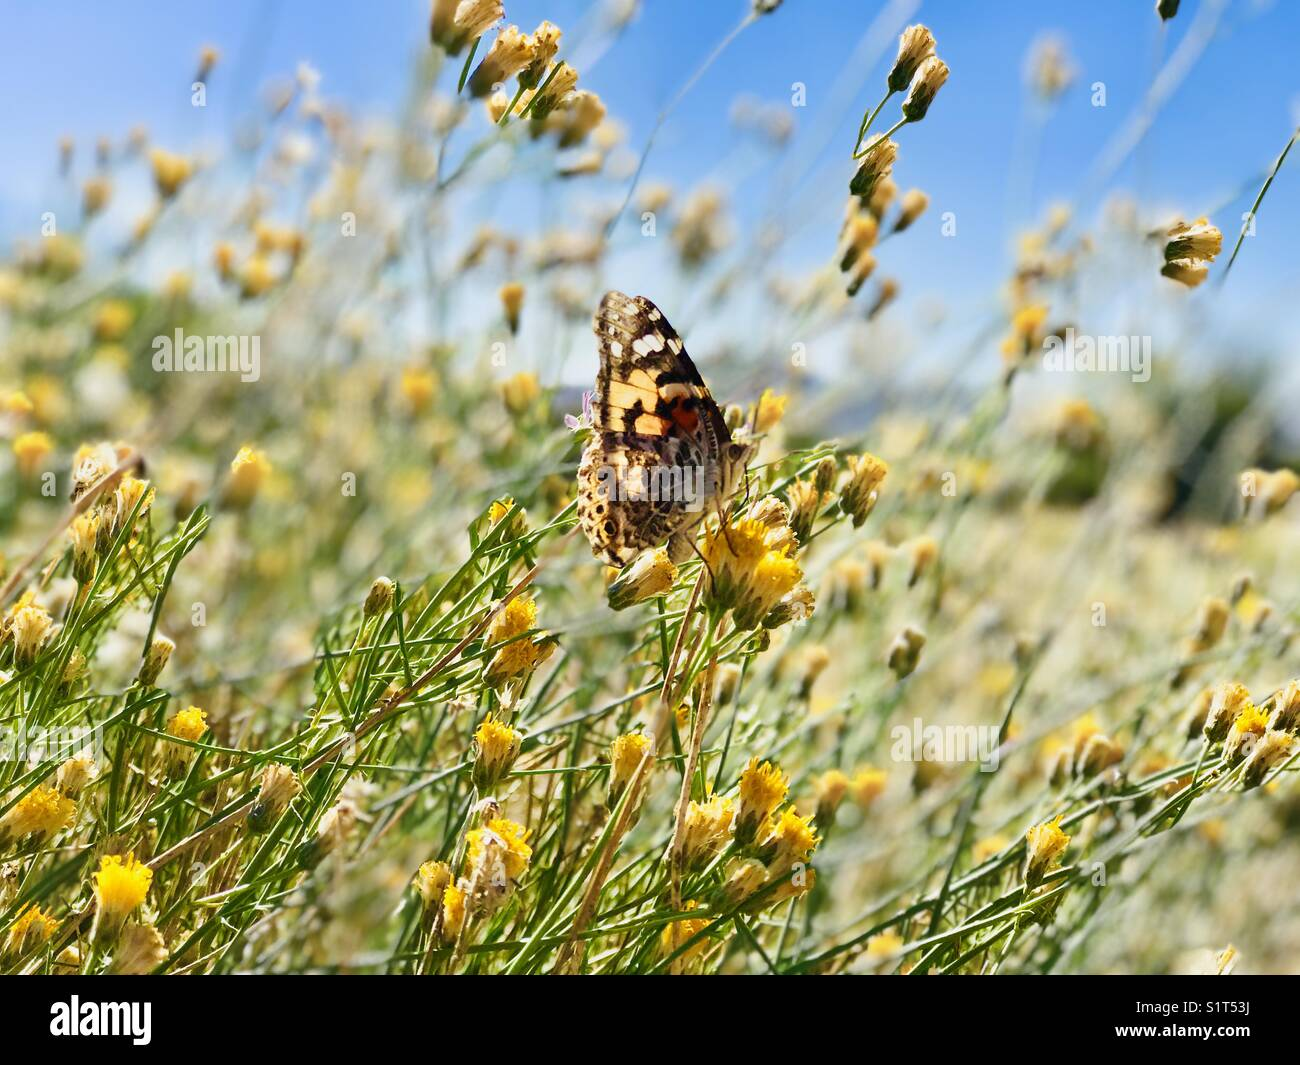 Butterfly feeding on flowers at the Lower Salt River, AZ - Stock Image